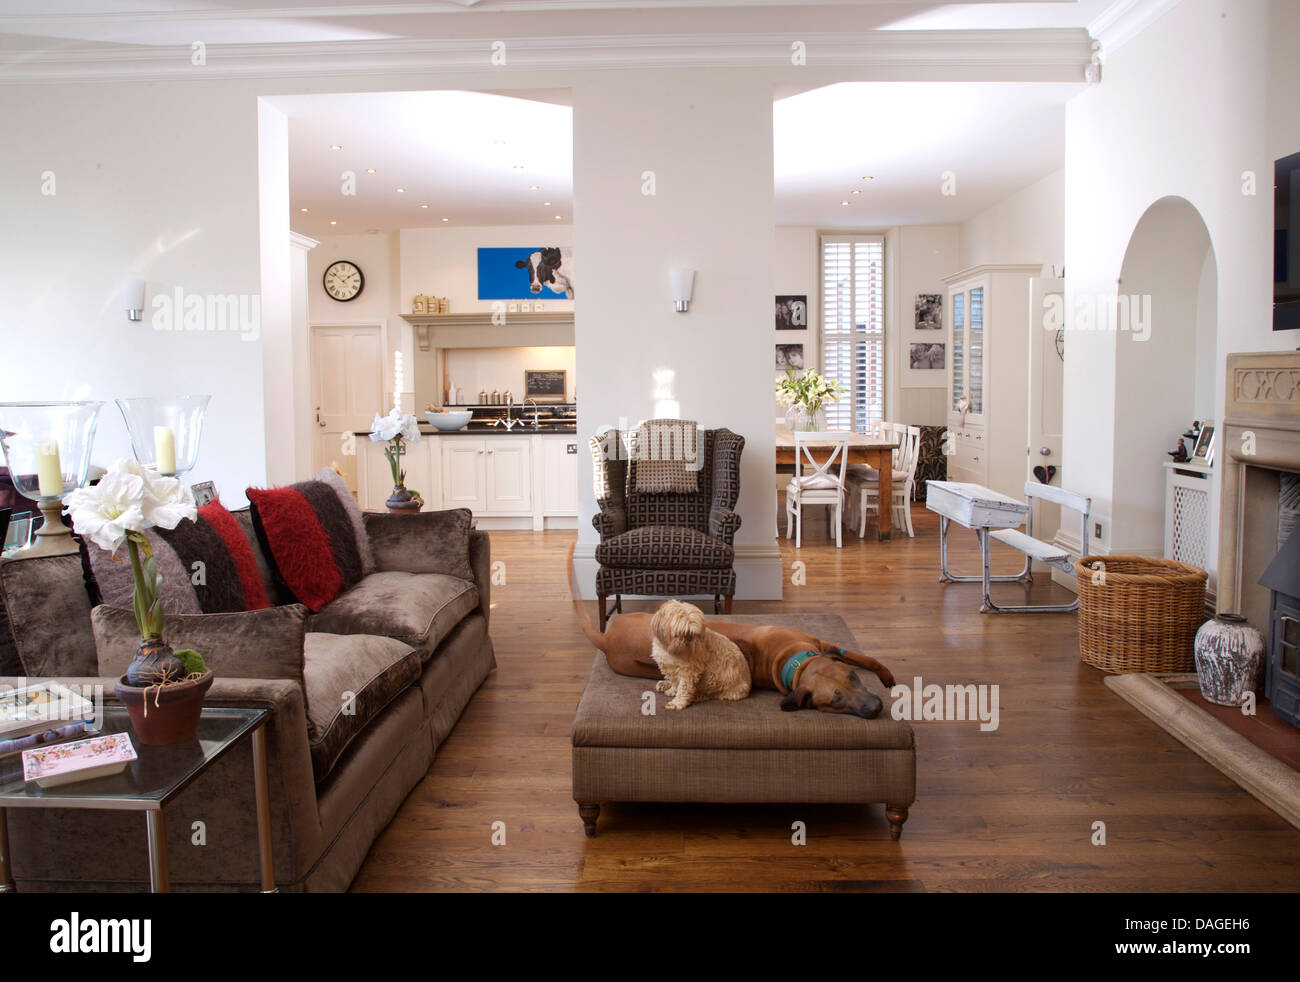 Dining room front view - Dogs Lying On Ottoman In Front Of Beige Velvet Sofa In Large Open Plan Living Room With View Of Kitchen And Dining Room